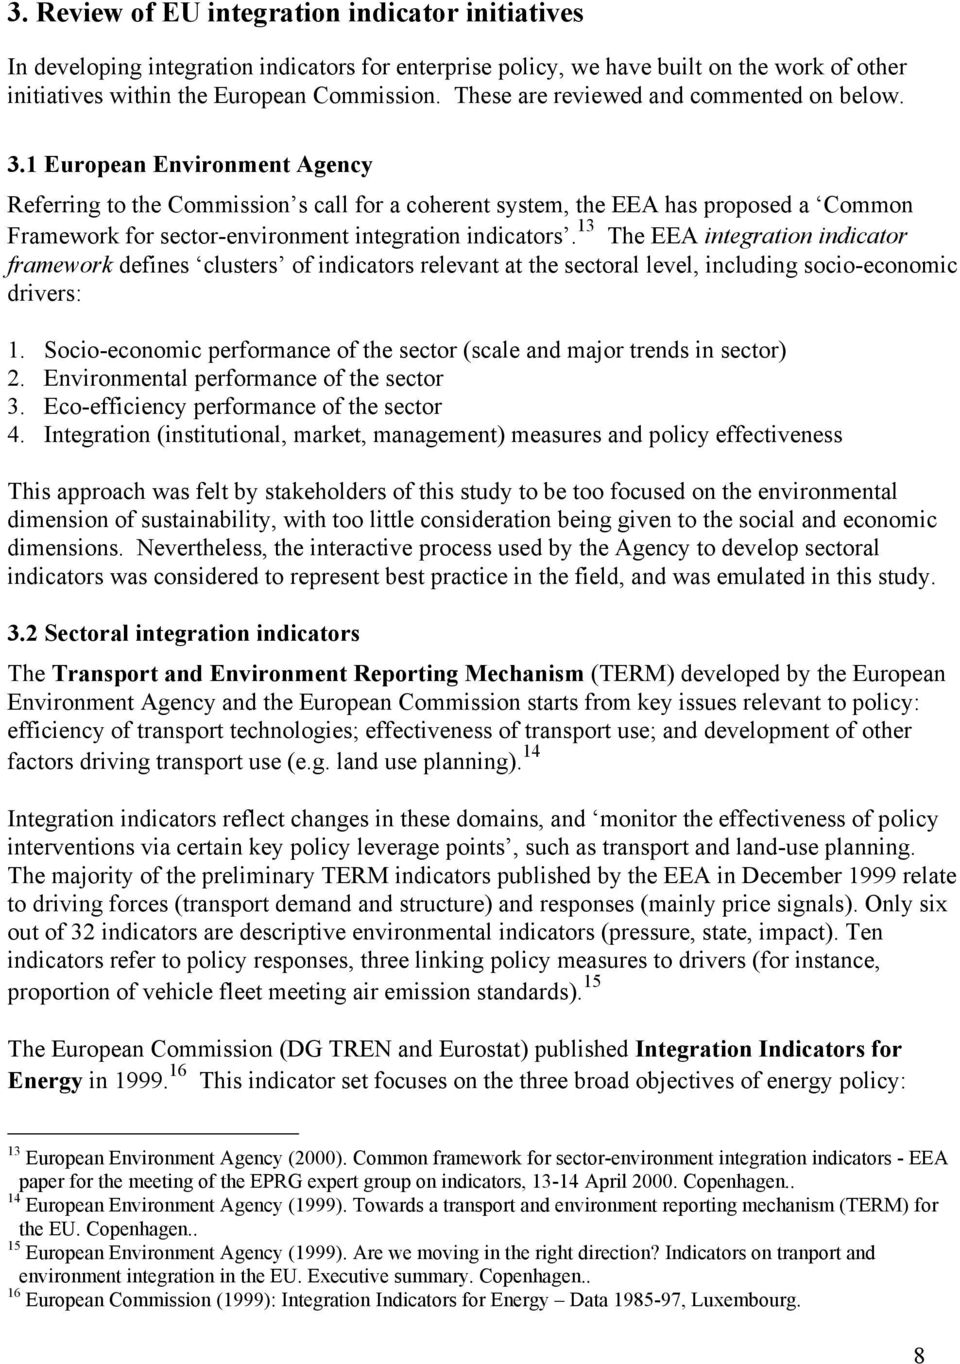 1 European Environment Agency Referring to the Commission s call for a coherent system, the EEA has proposed a Common Framework for sector-environment integration indicators.